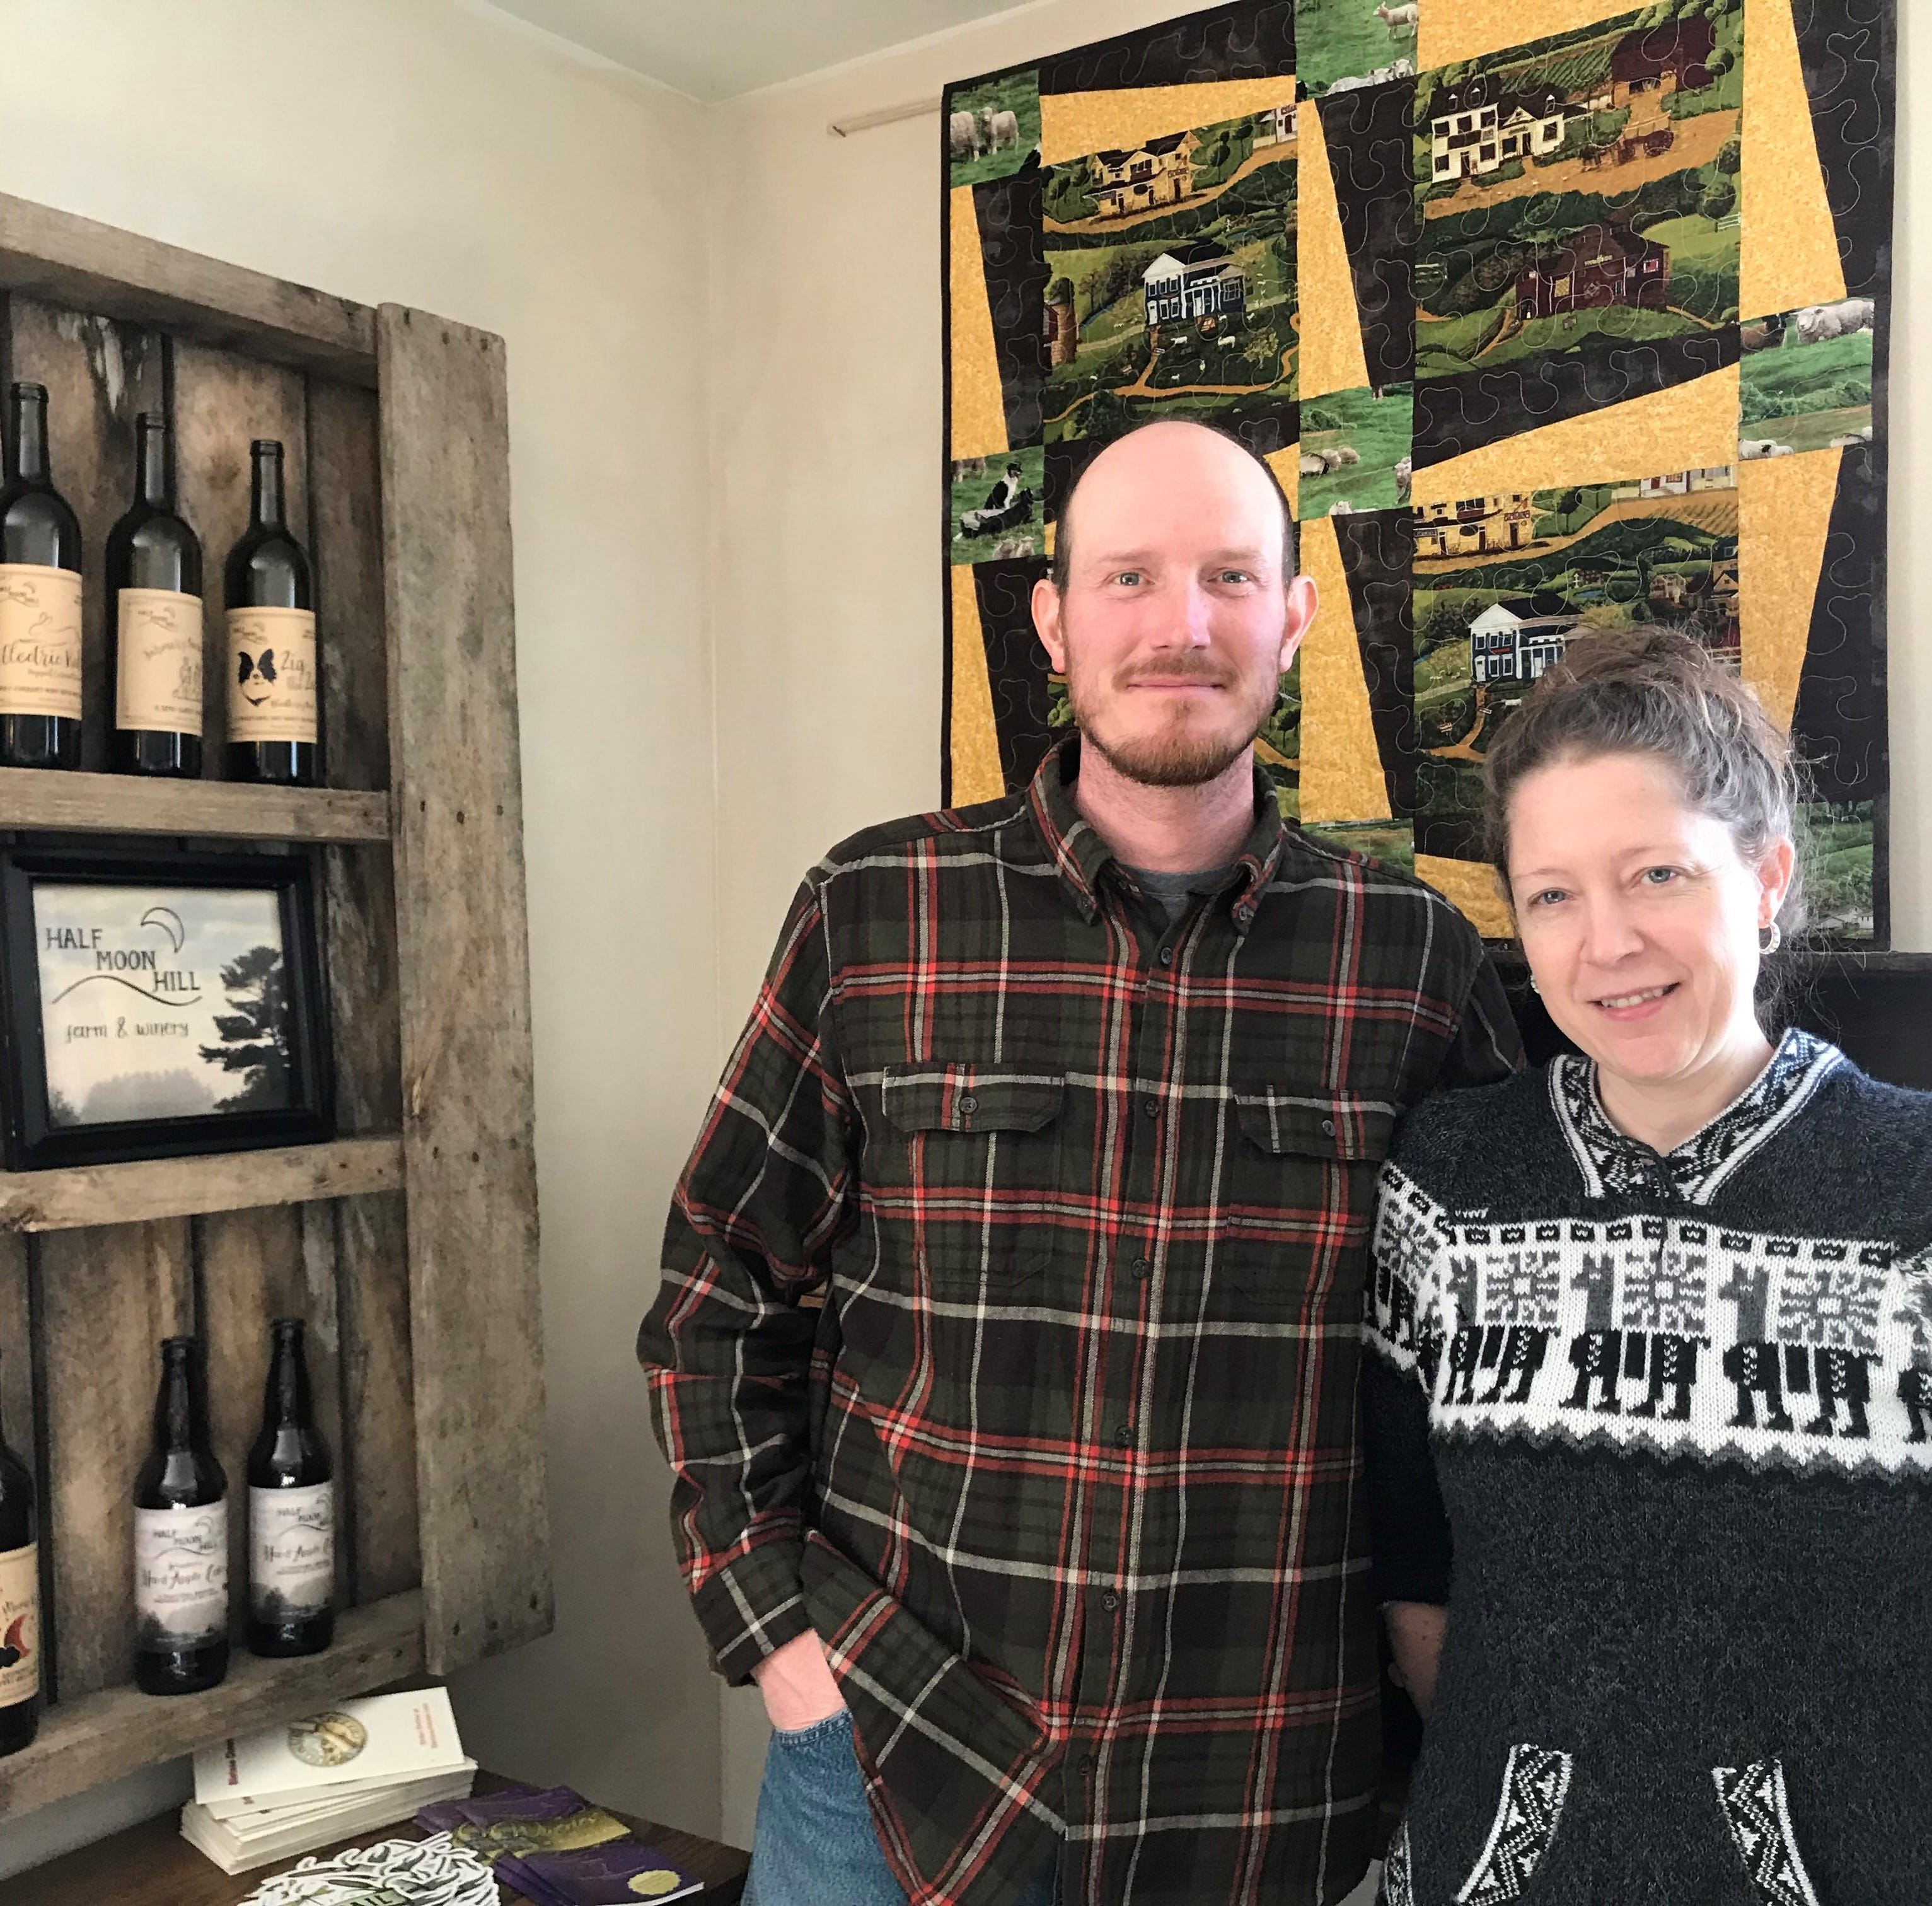 Half Moon Hill Farm & Winery finds success making mead instead of grape-based wines